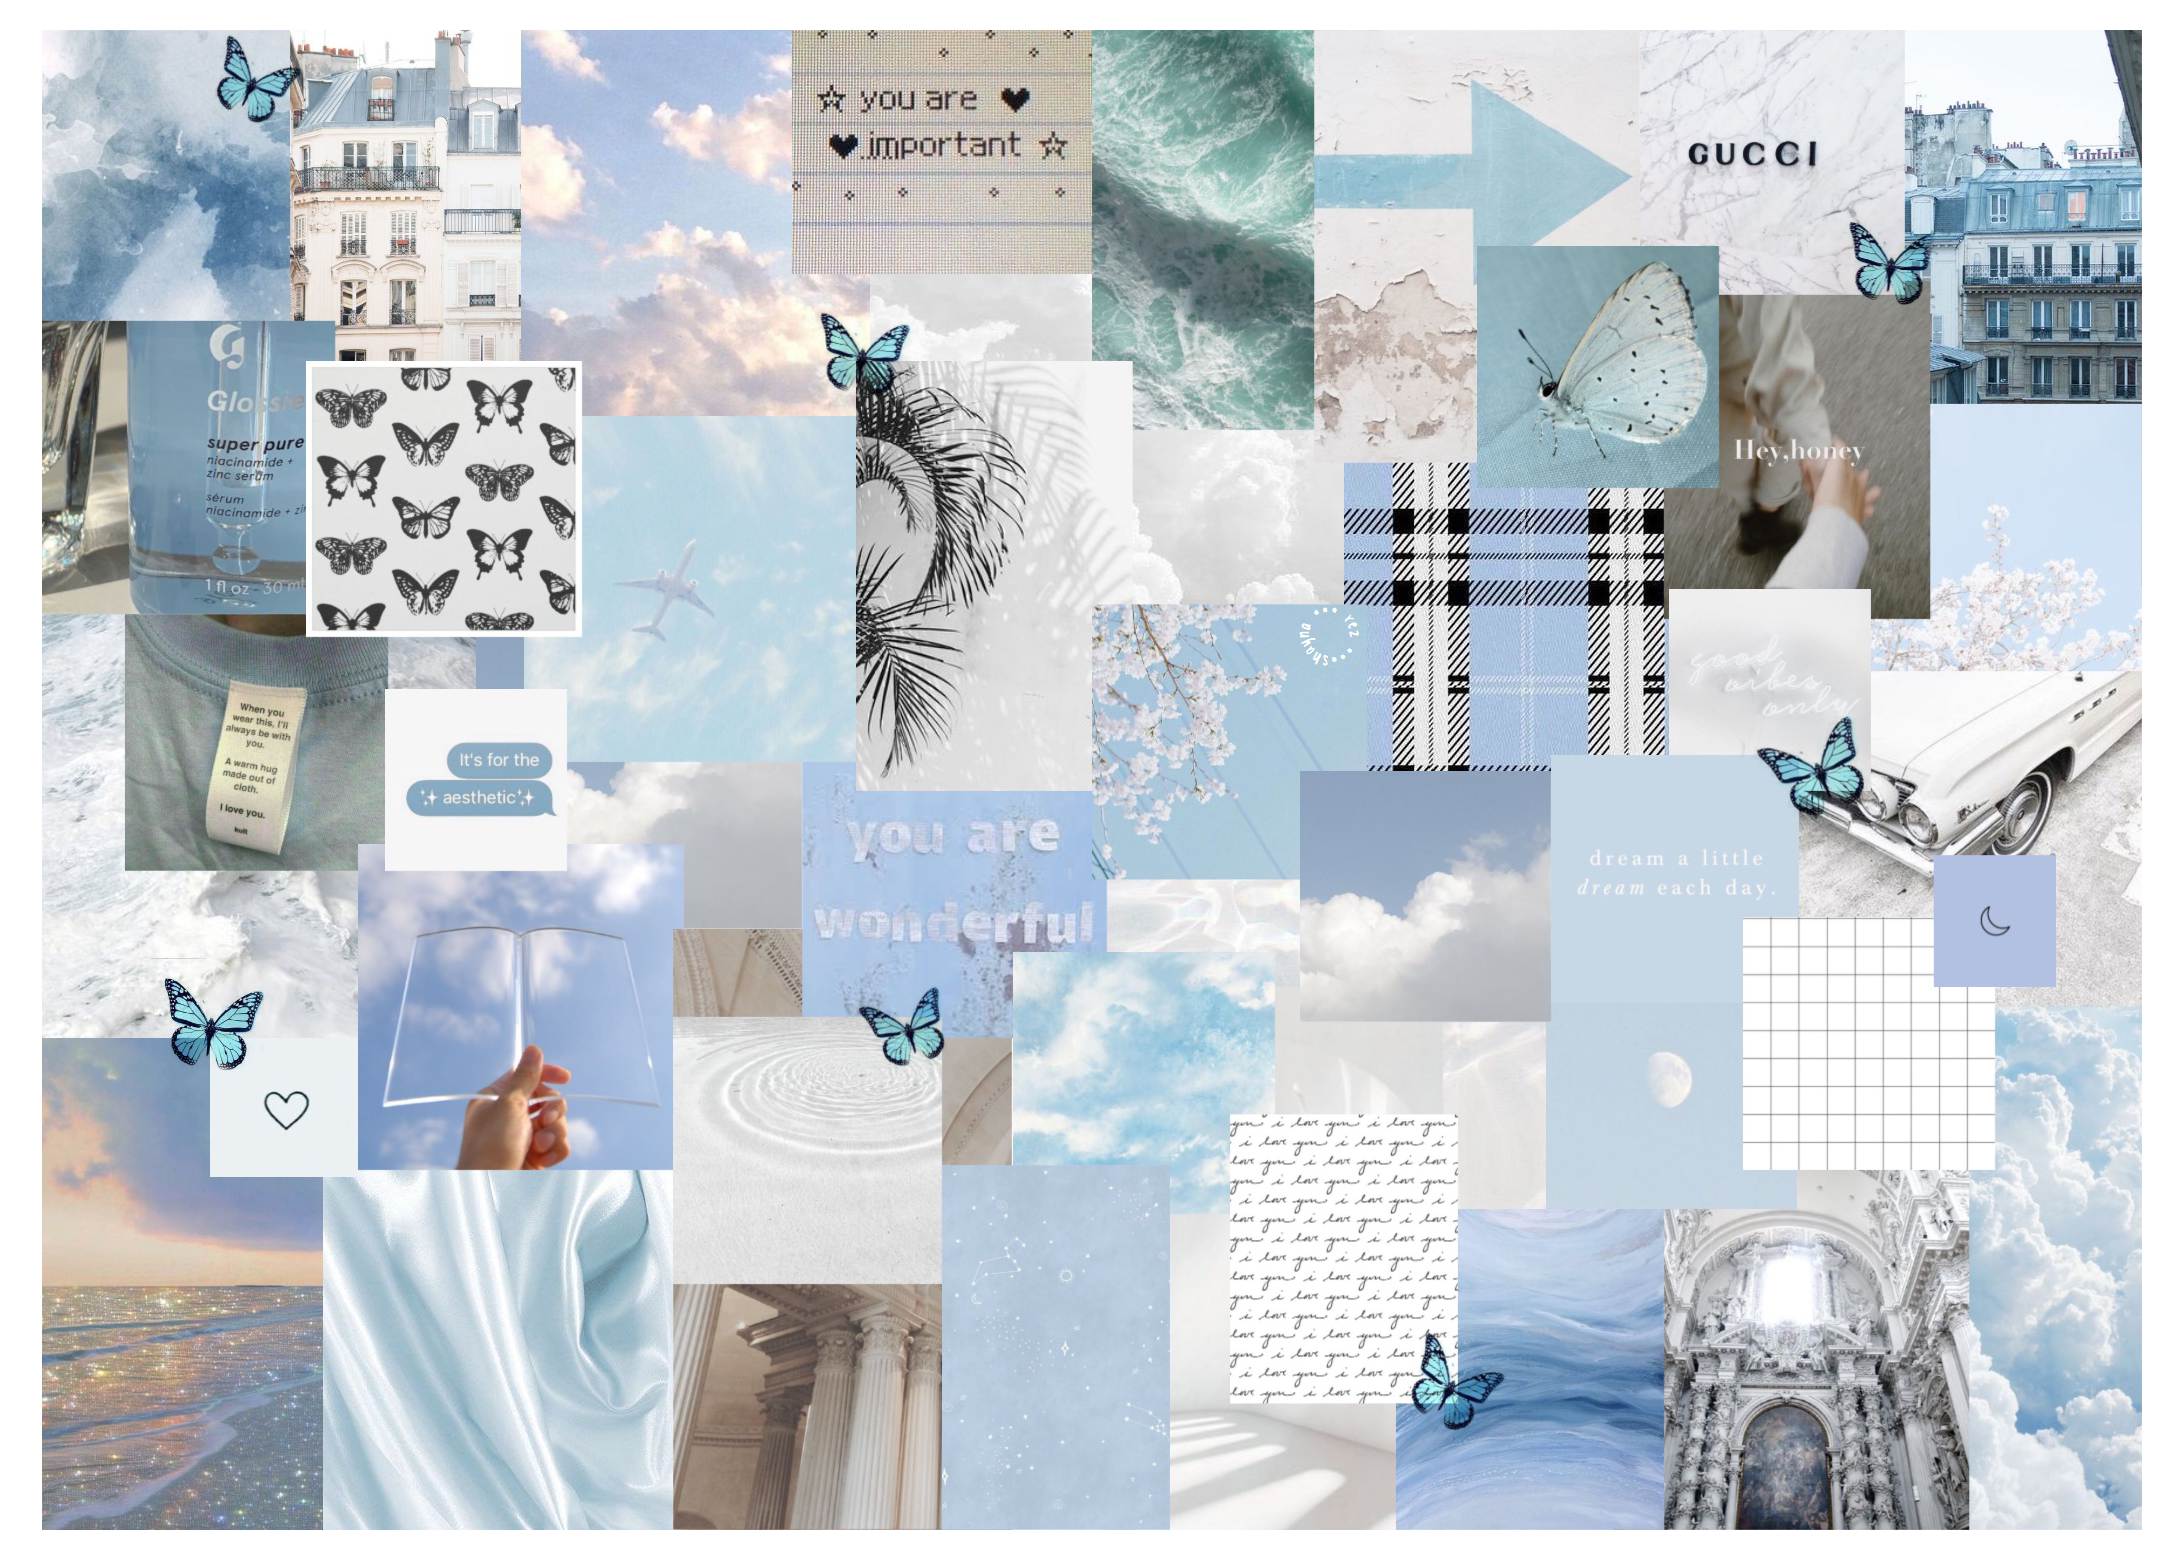 Blue White Aesthetic Laptop Wallpaper Baby Blue Aesthetic Collage Babyblueaesth In 2021 Cute Desktop Wallpaper Aesthetic Desktop Wallpaper Cute Laptop Wallpaper